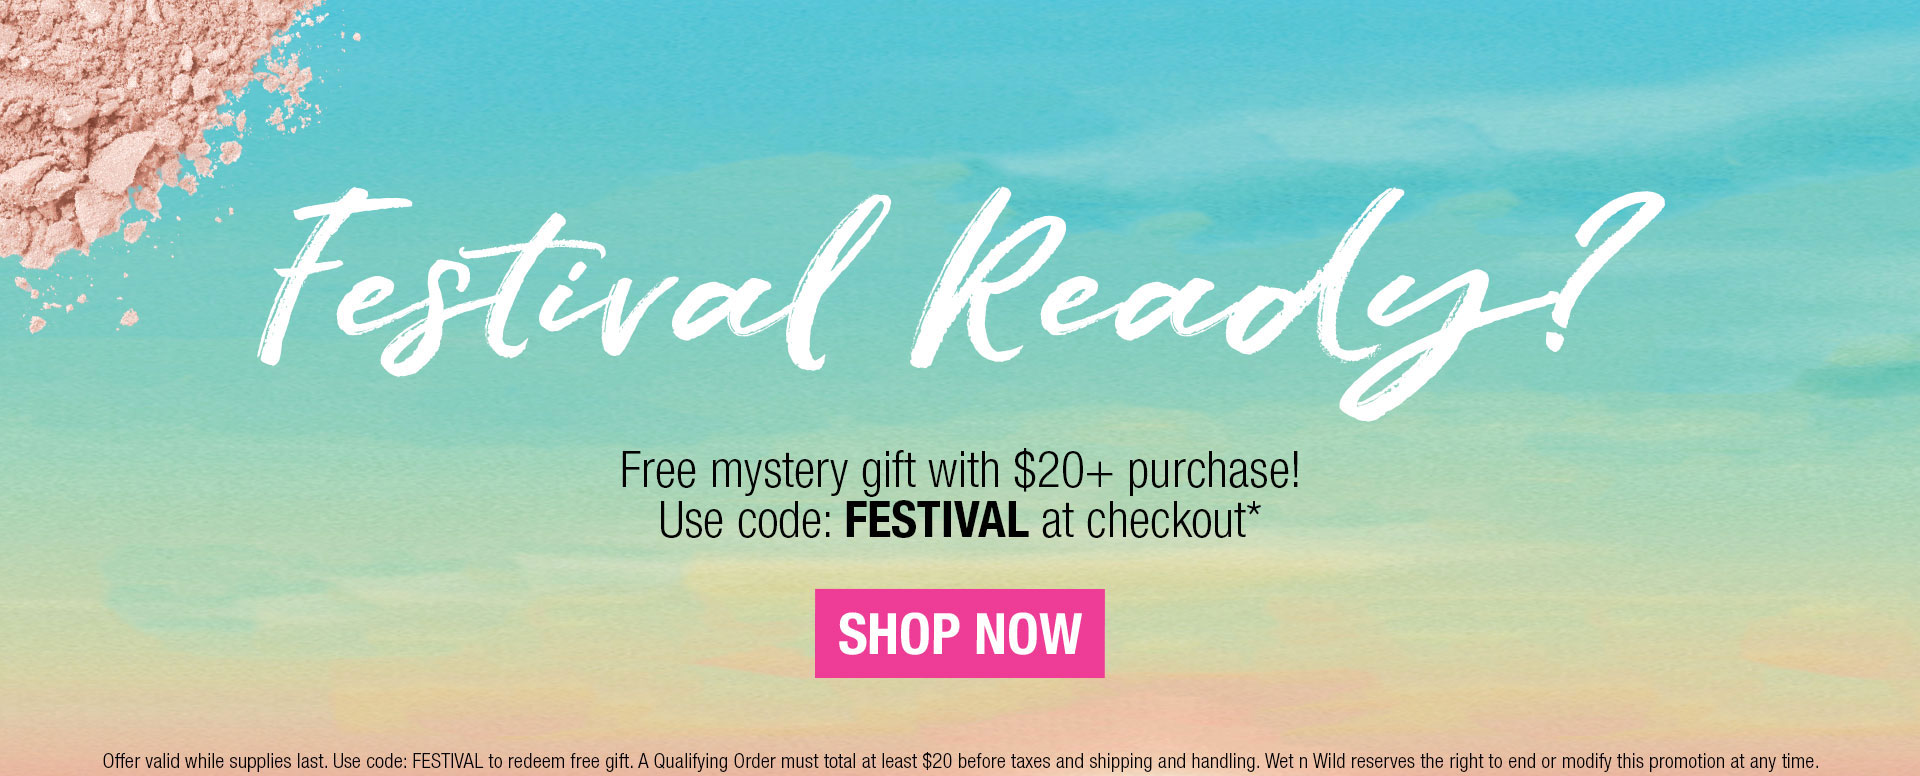 Festival Ready? Free gift with a $20+ purchase